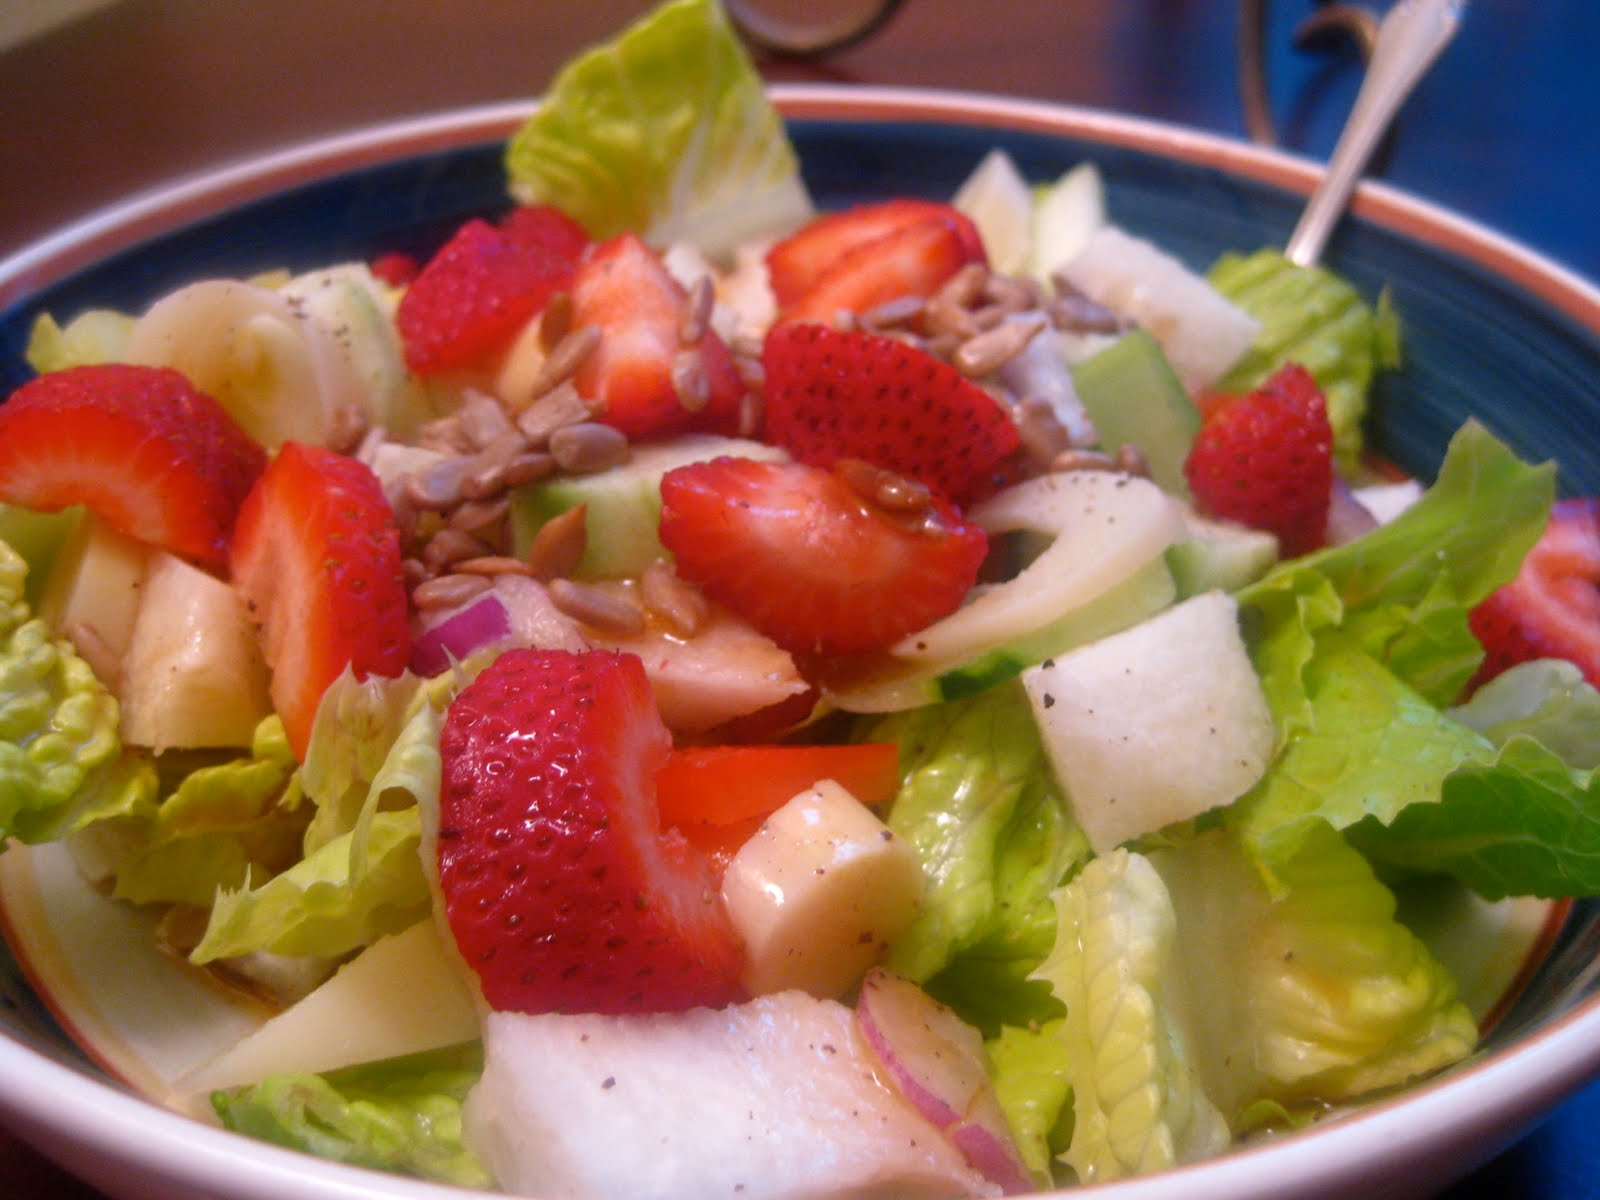 Cool summer salads perfect for a picnic or beach pasta salad with